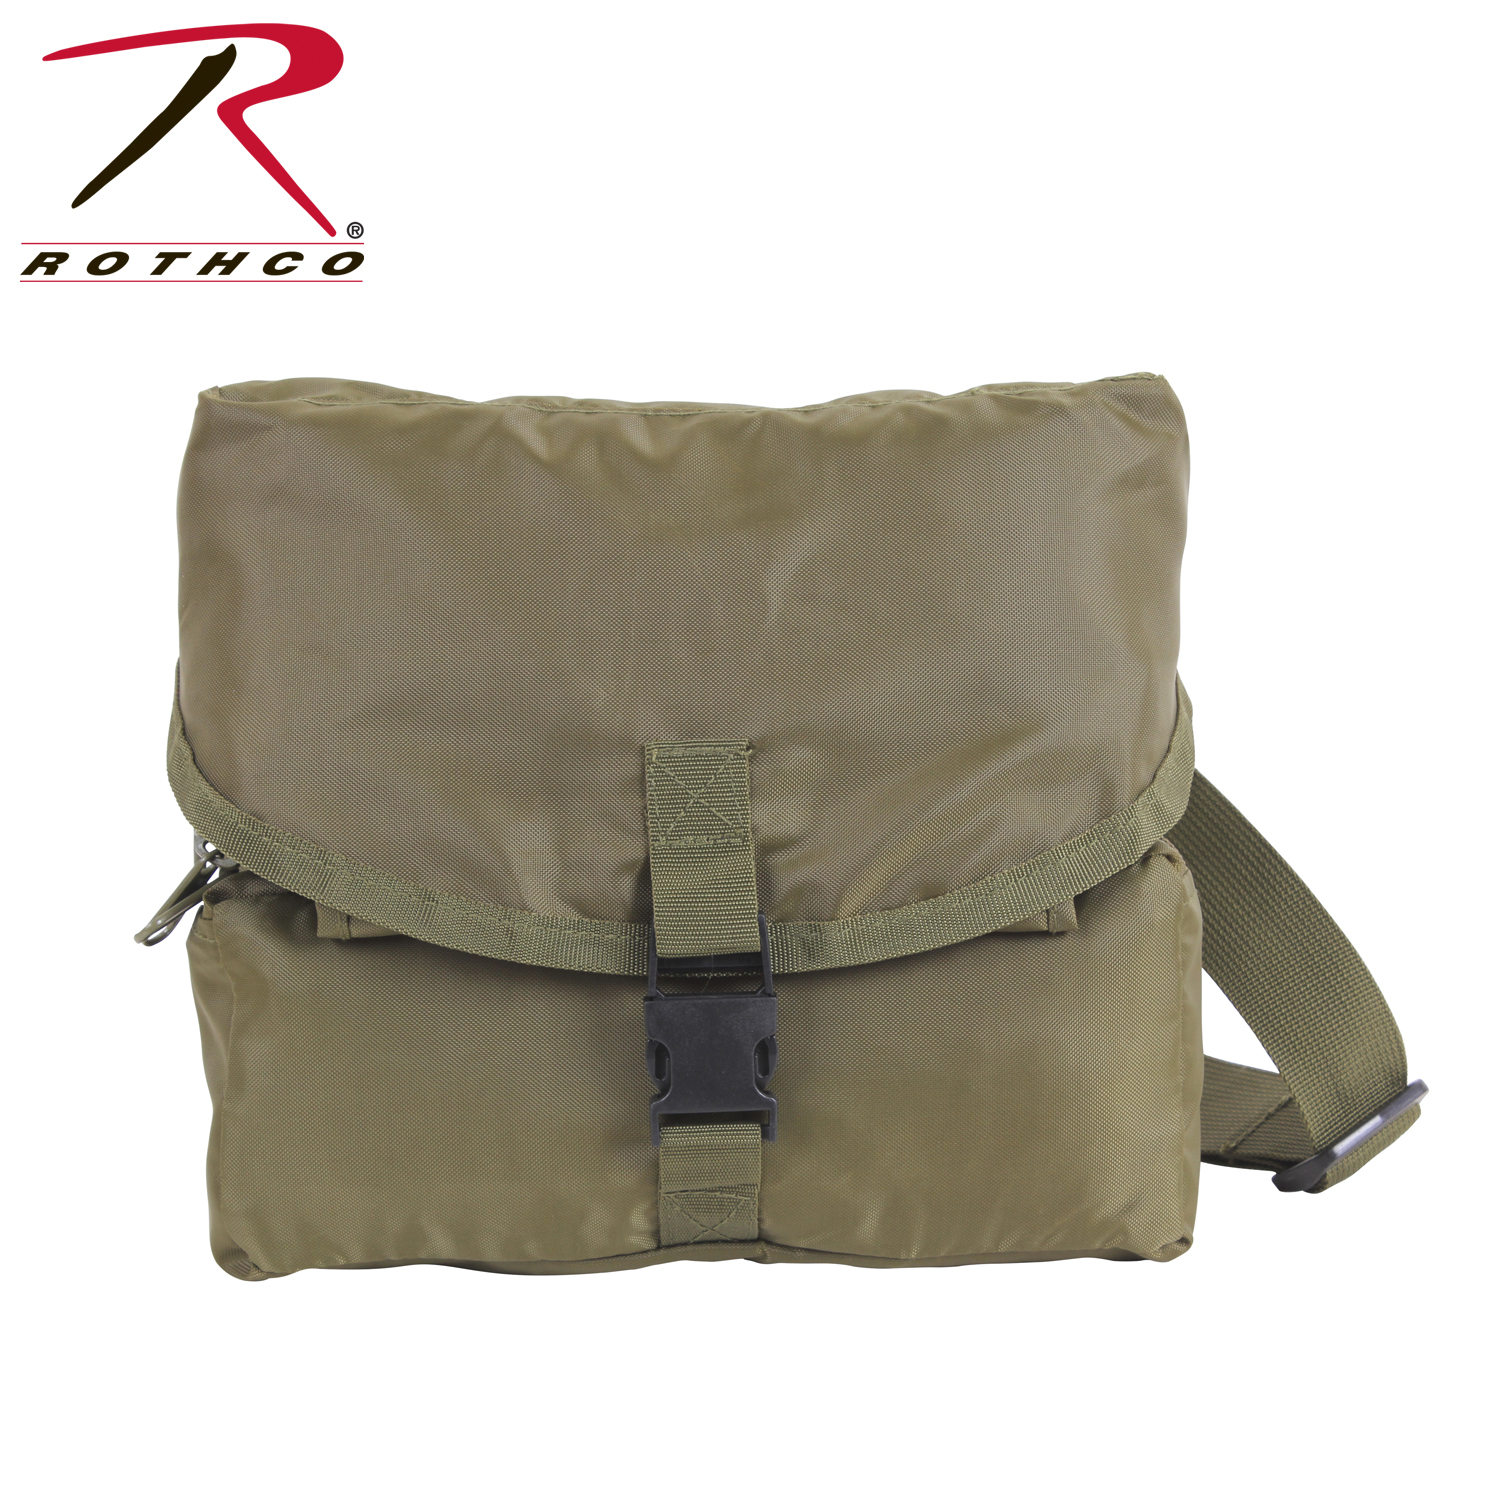 GI Style Medical Kit Bag Olive Drab